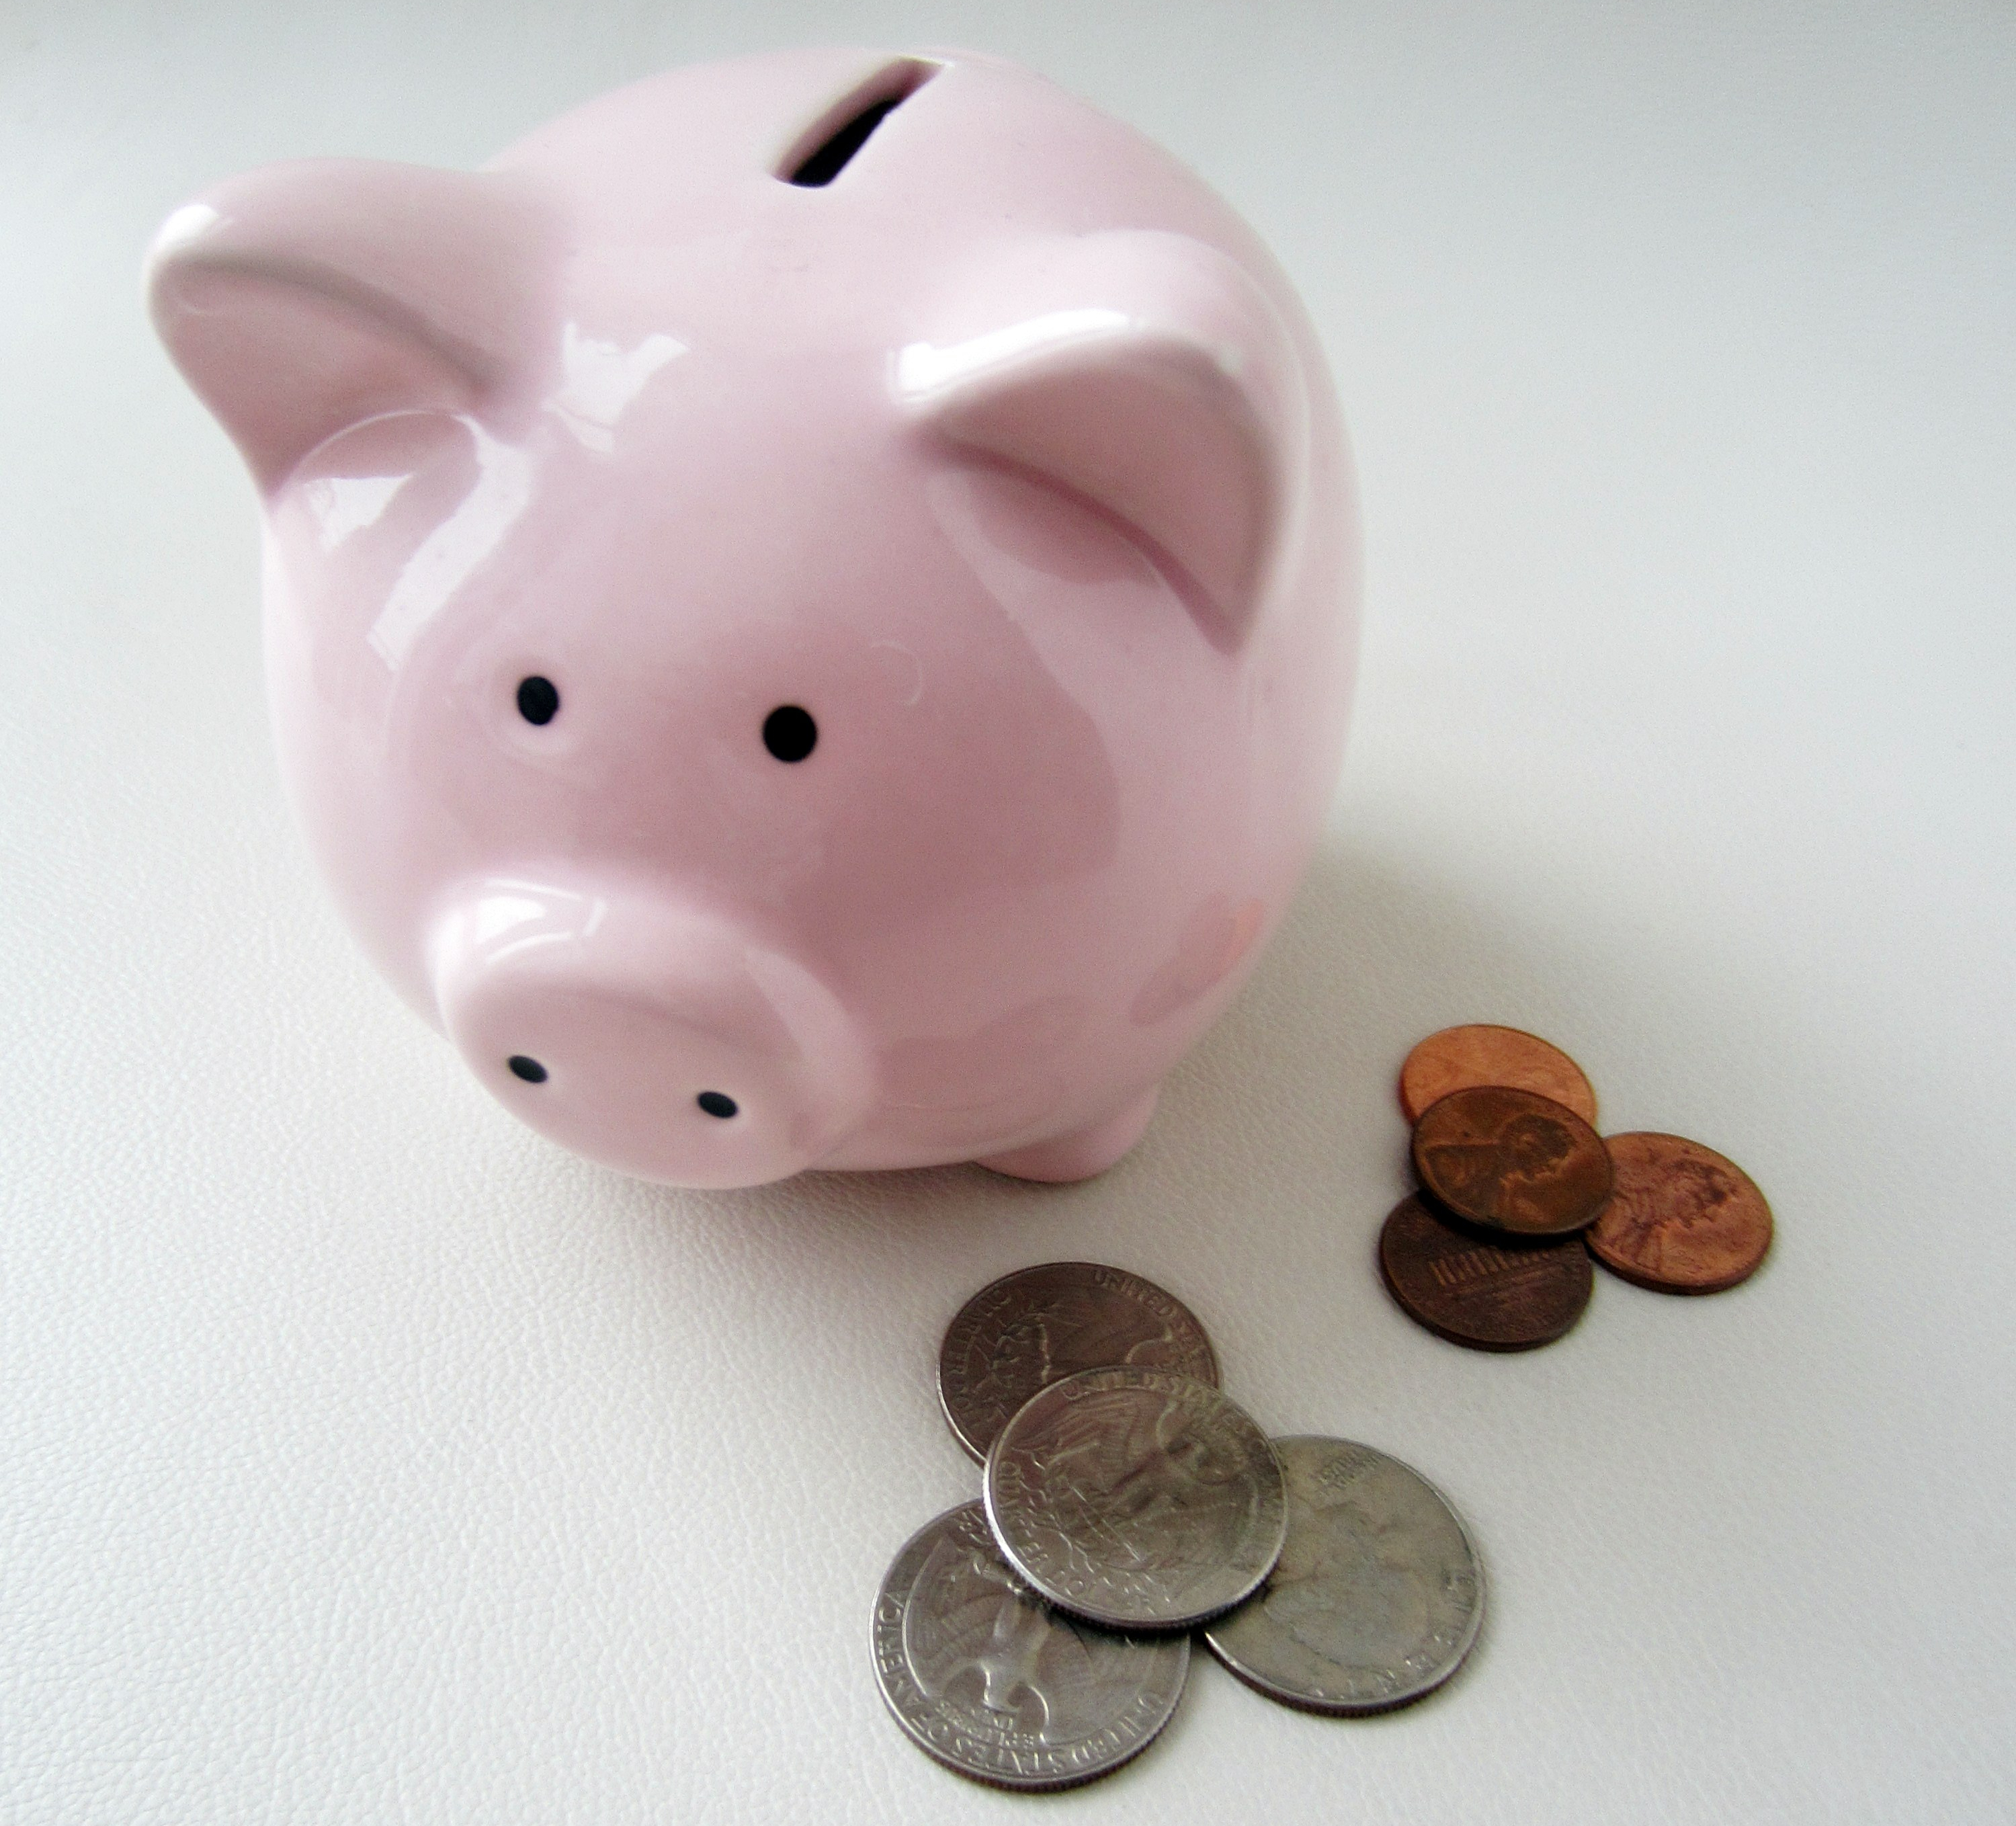 piggy-bank-and-coins.jpg